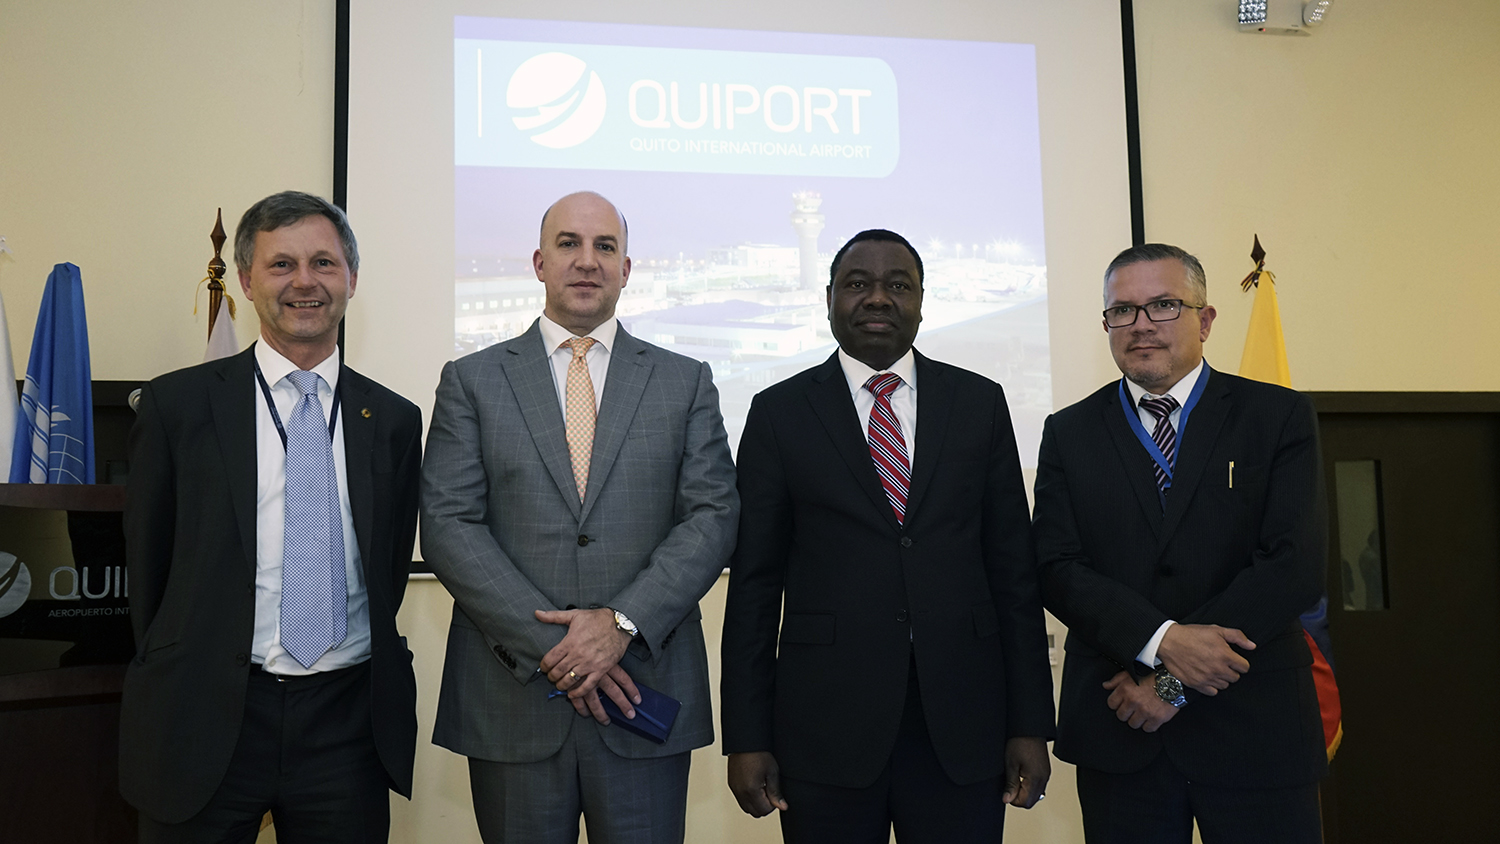 INTERNATIONAL CIVIL AVIATION ORGANIZATION (ICAO) HIGH LEVEL DELEGATION VISITED THE QUITO AIRPORT